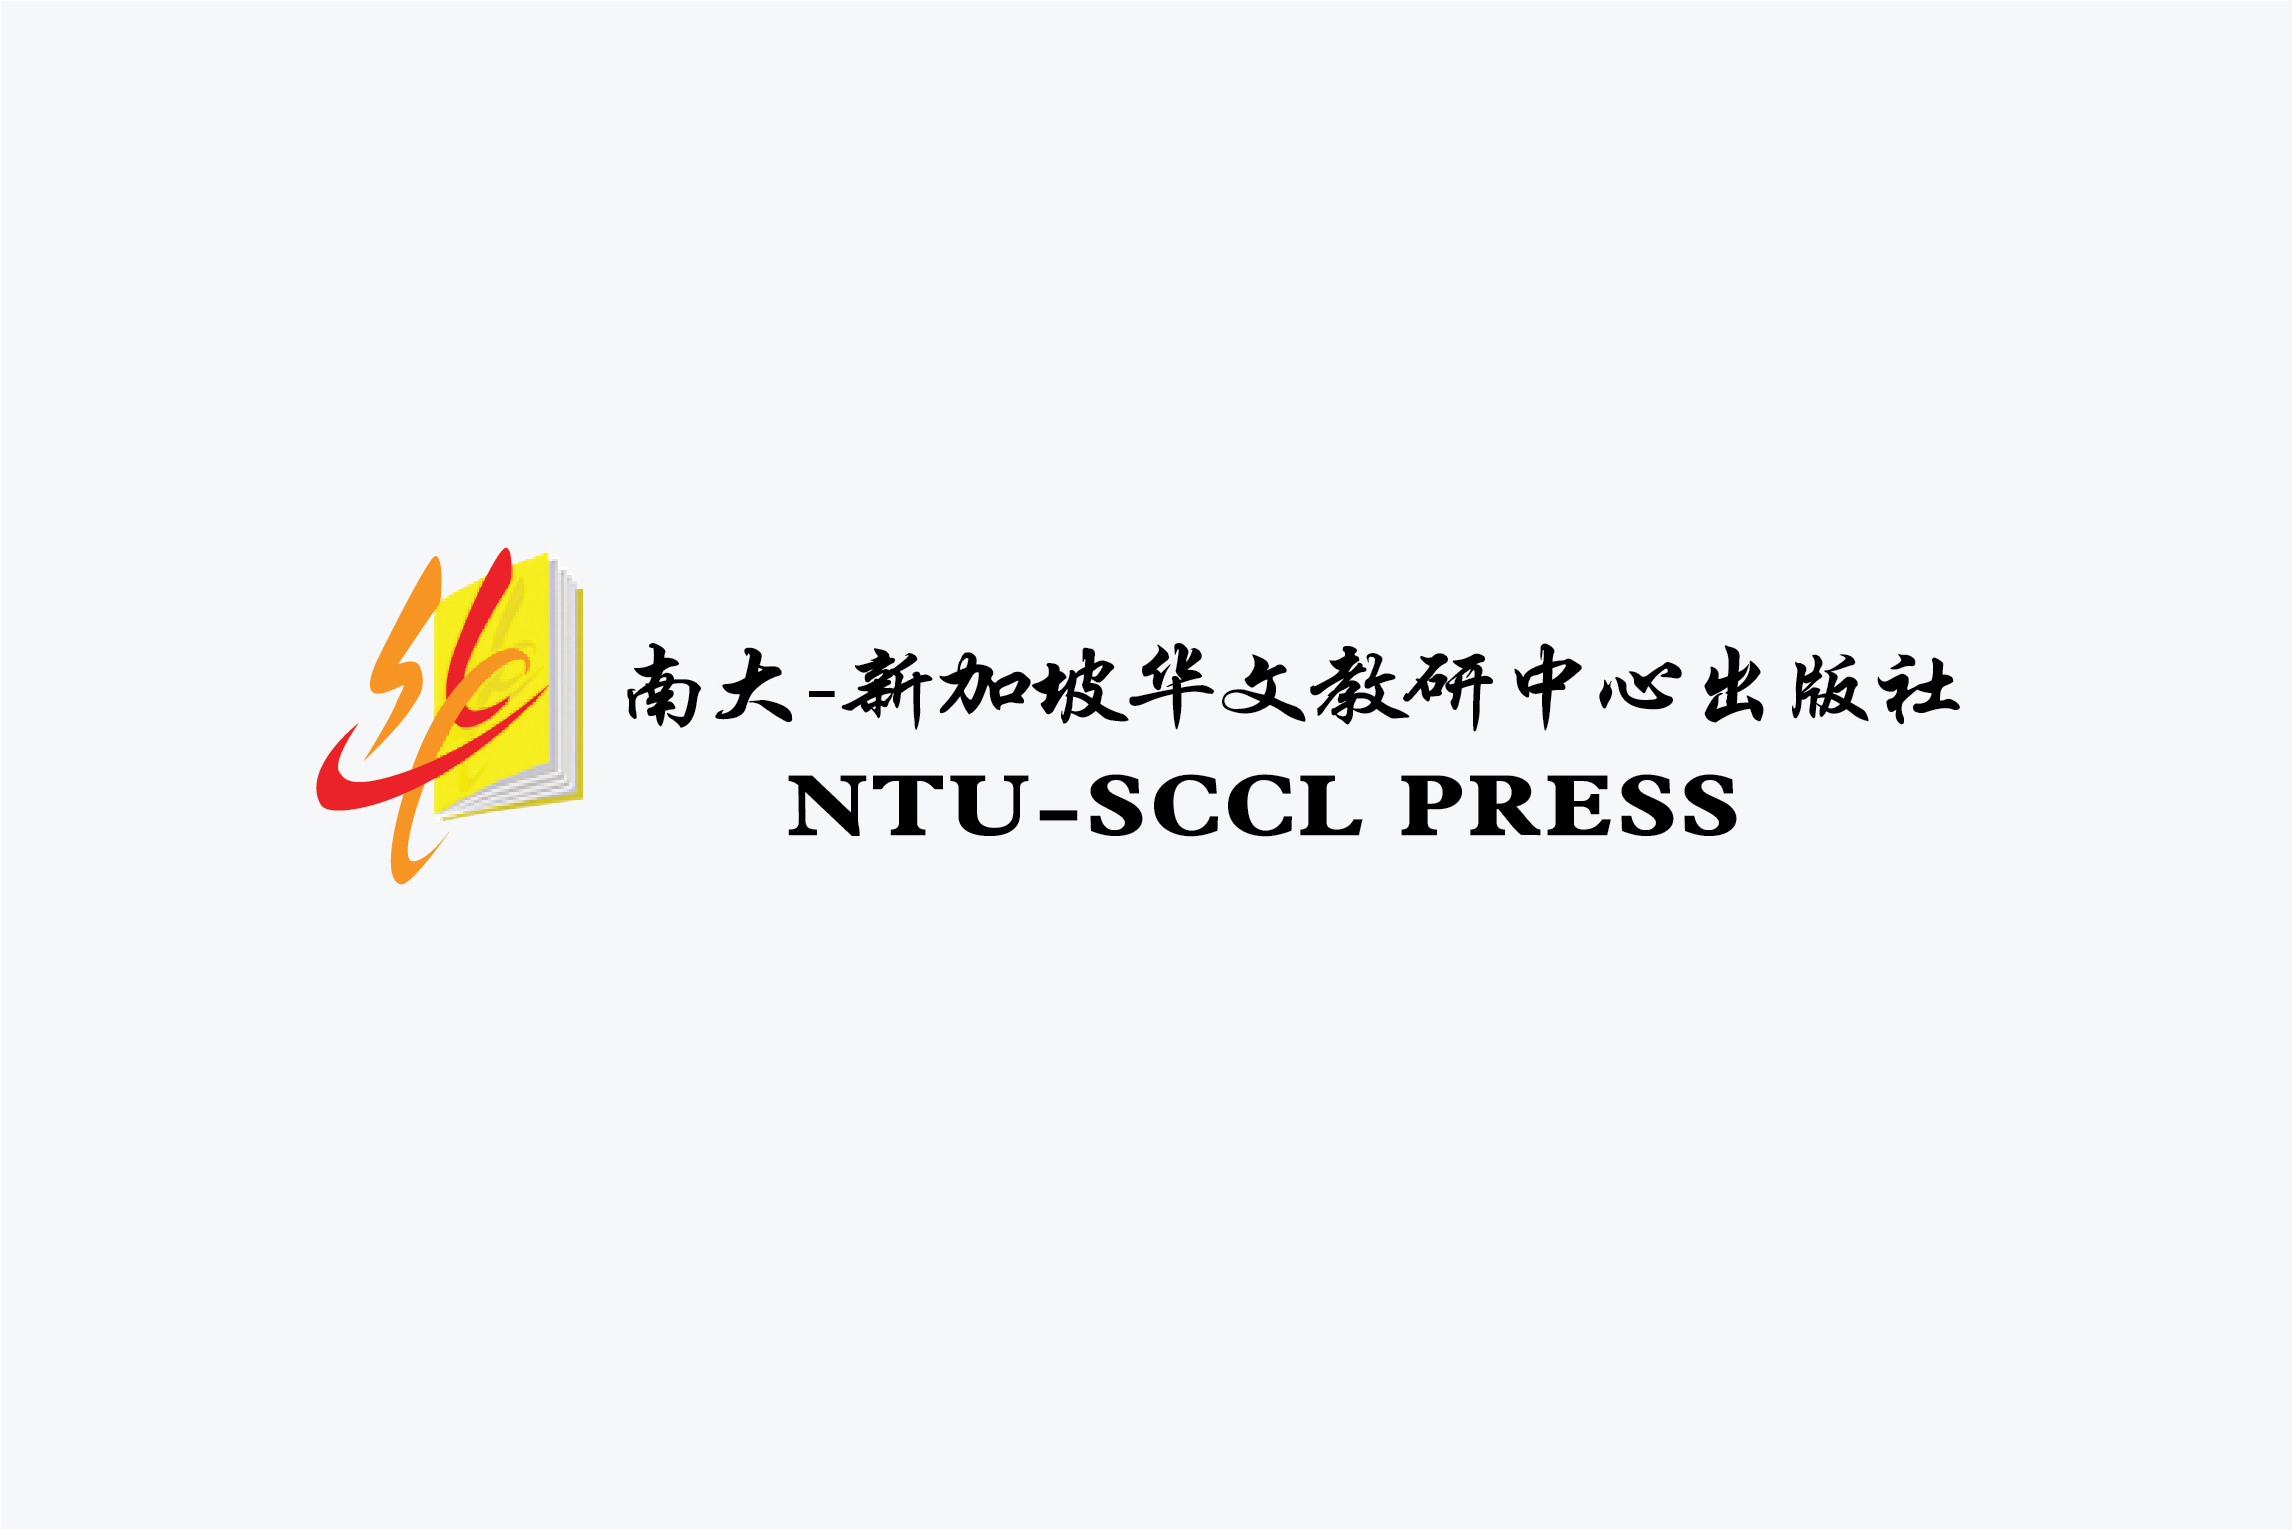 NTU SCCL Press logo 1